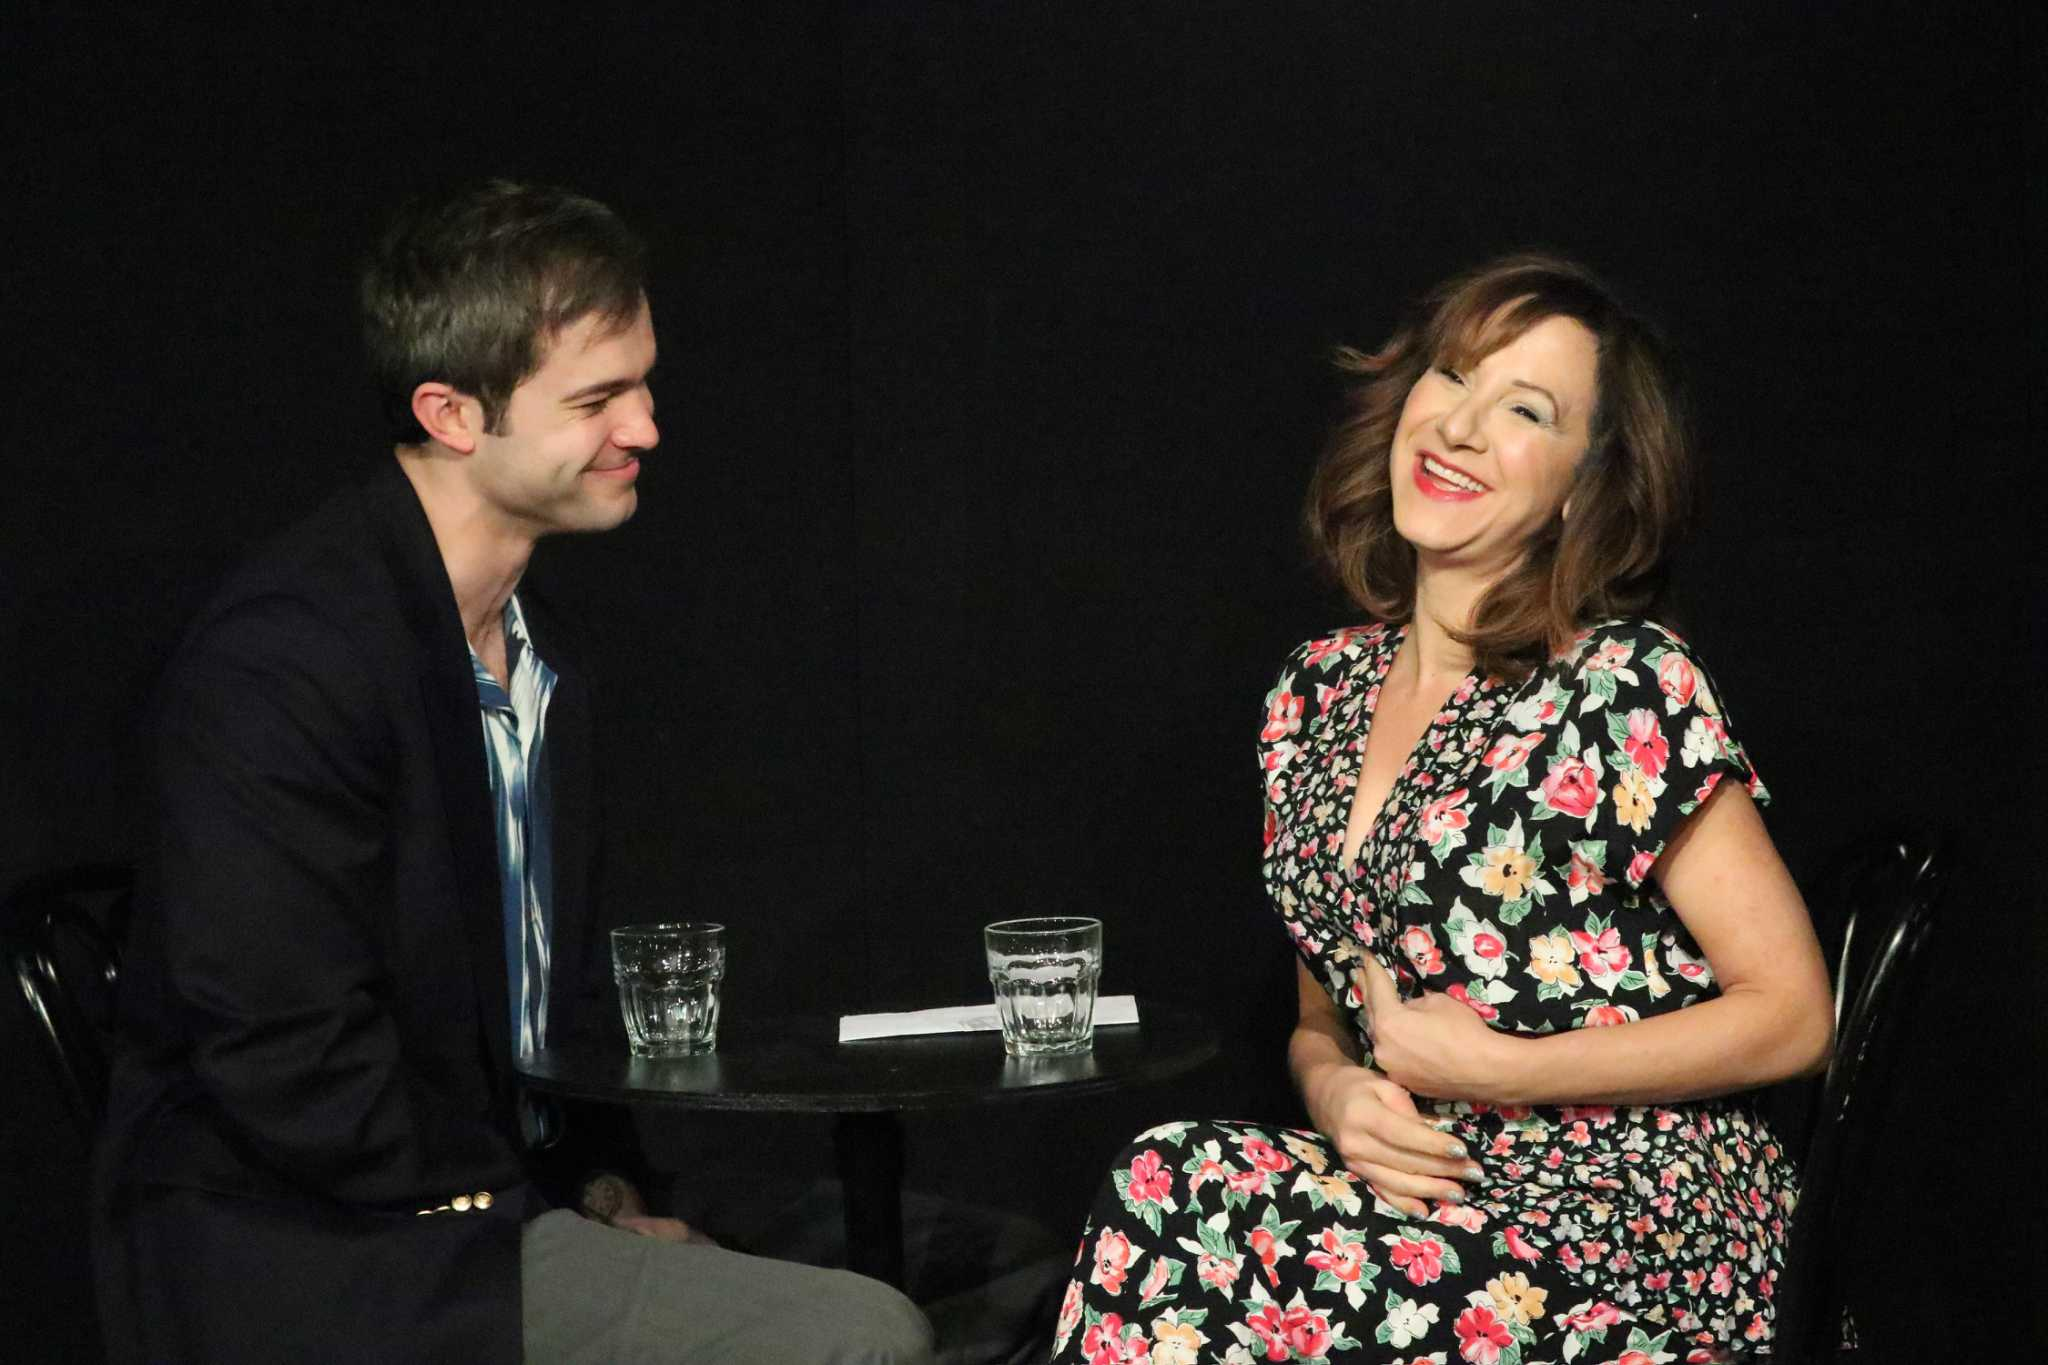 'Beyond Therapy' at Curtain Call's Dressing Room Theatre in Stamford